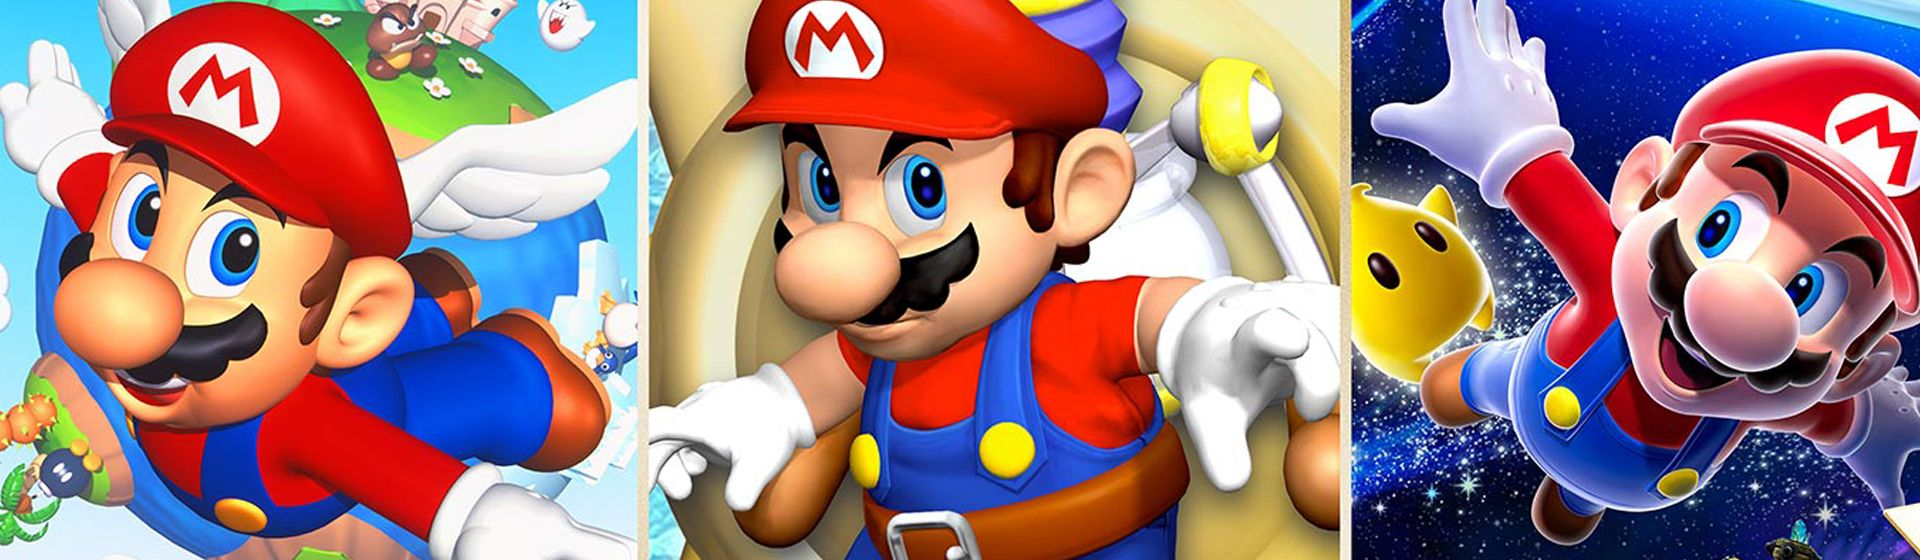 Super Mario 3D All-Stars é anunciado para setembro no Nintendo Switch